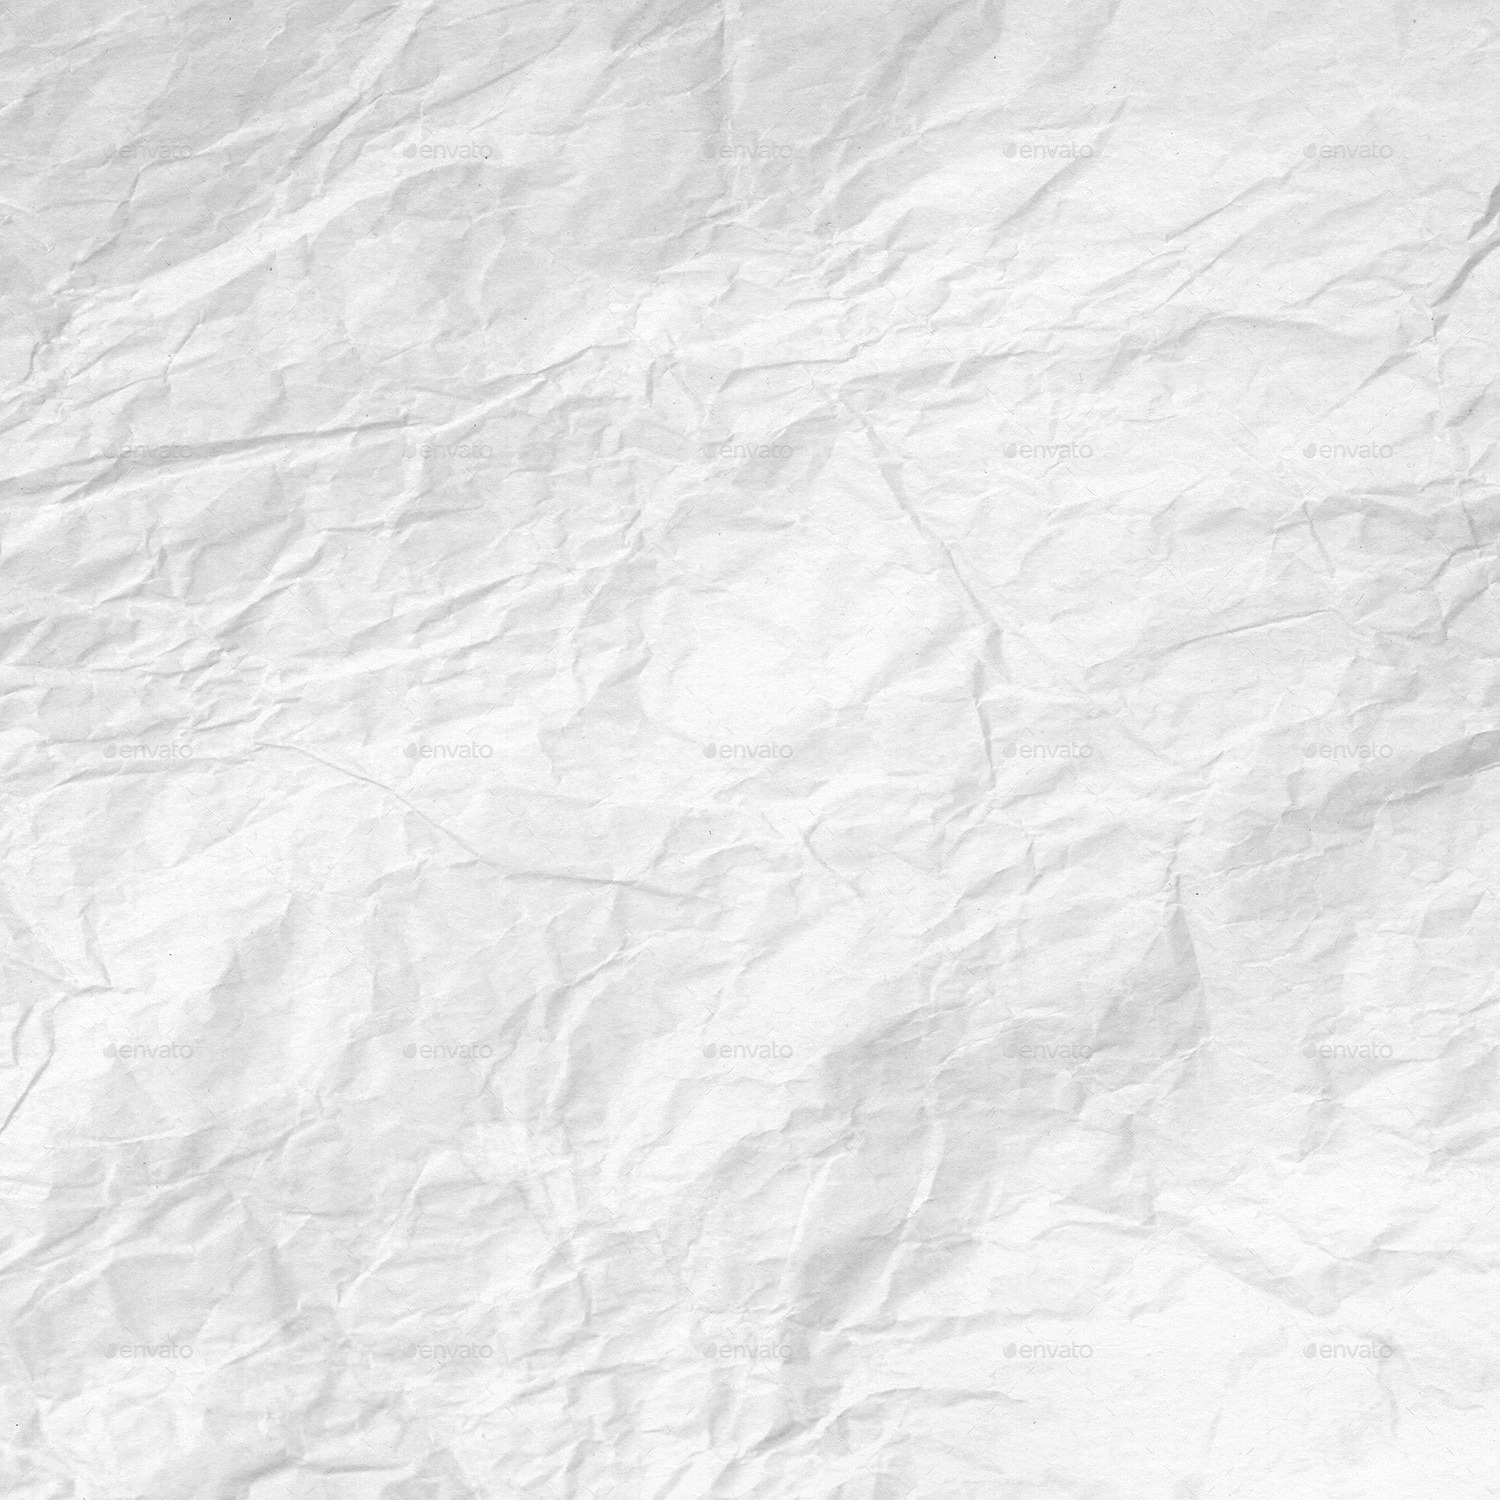 White Old Paper By Cinema4design